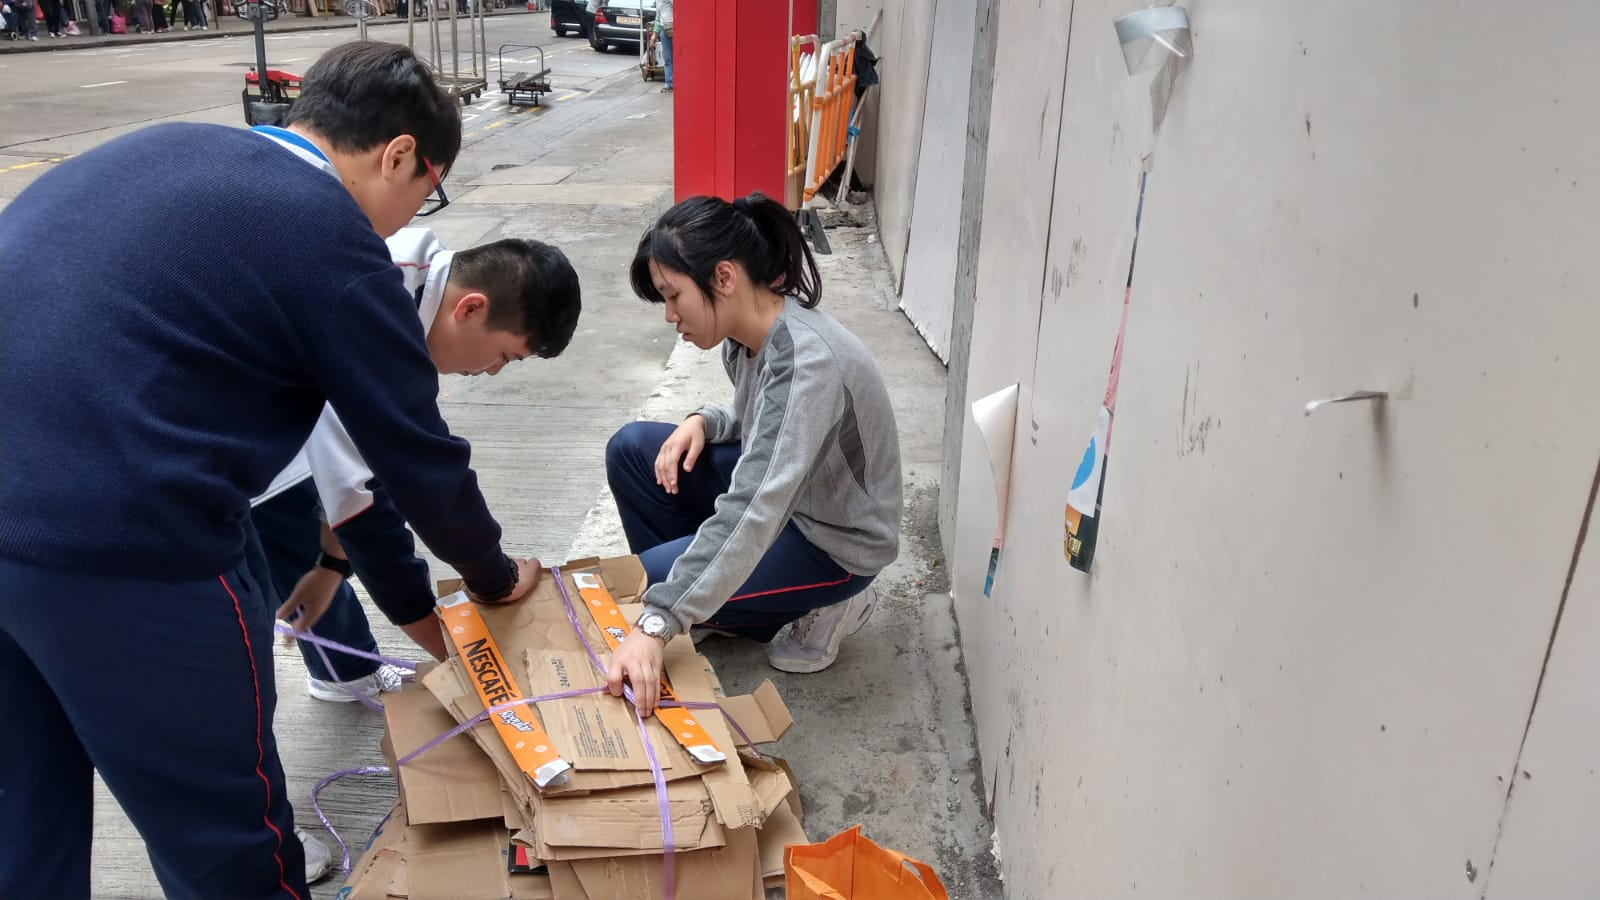 Students were tying the collected cardboard.